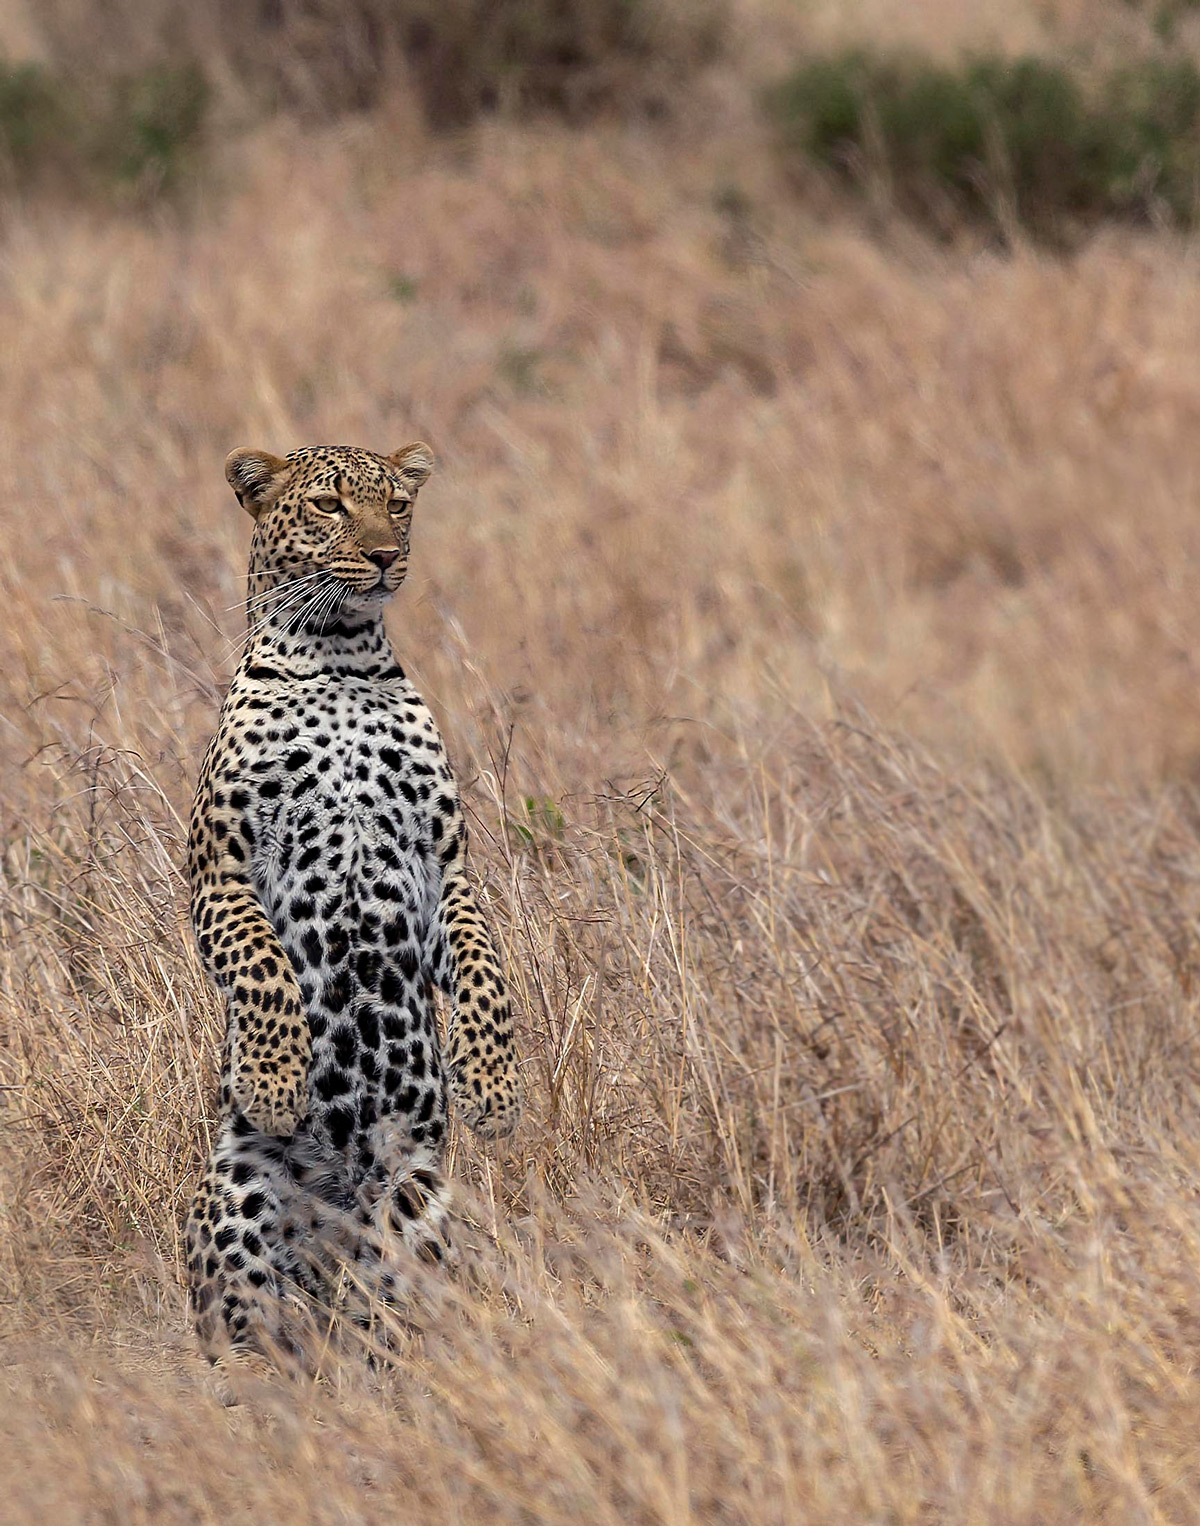 A young male leopard stands up to survey the vast grassland in Maasai Mara National Reserve, Kenya © Nitin Michael